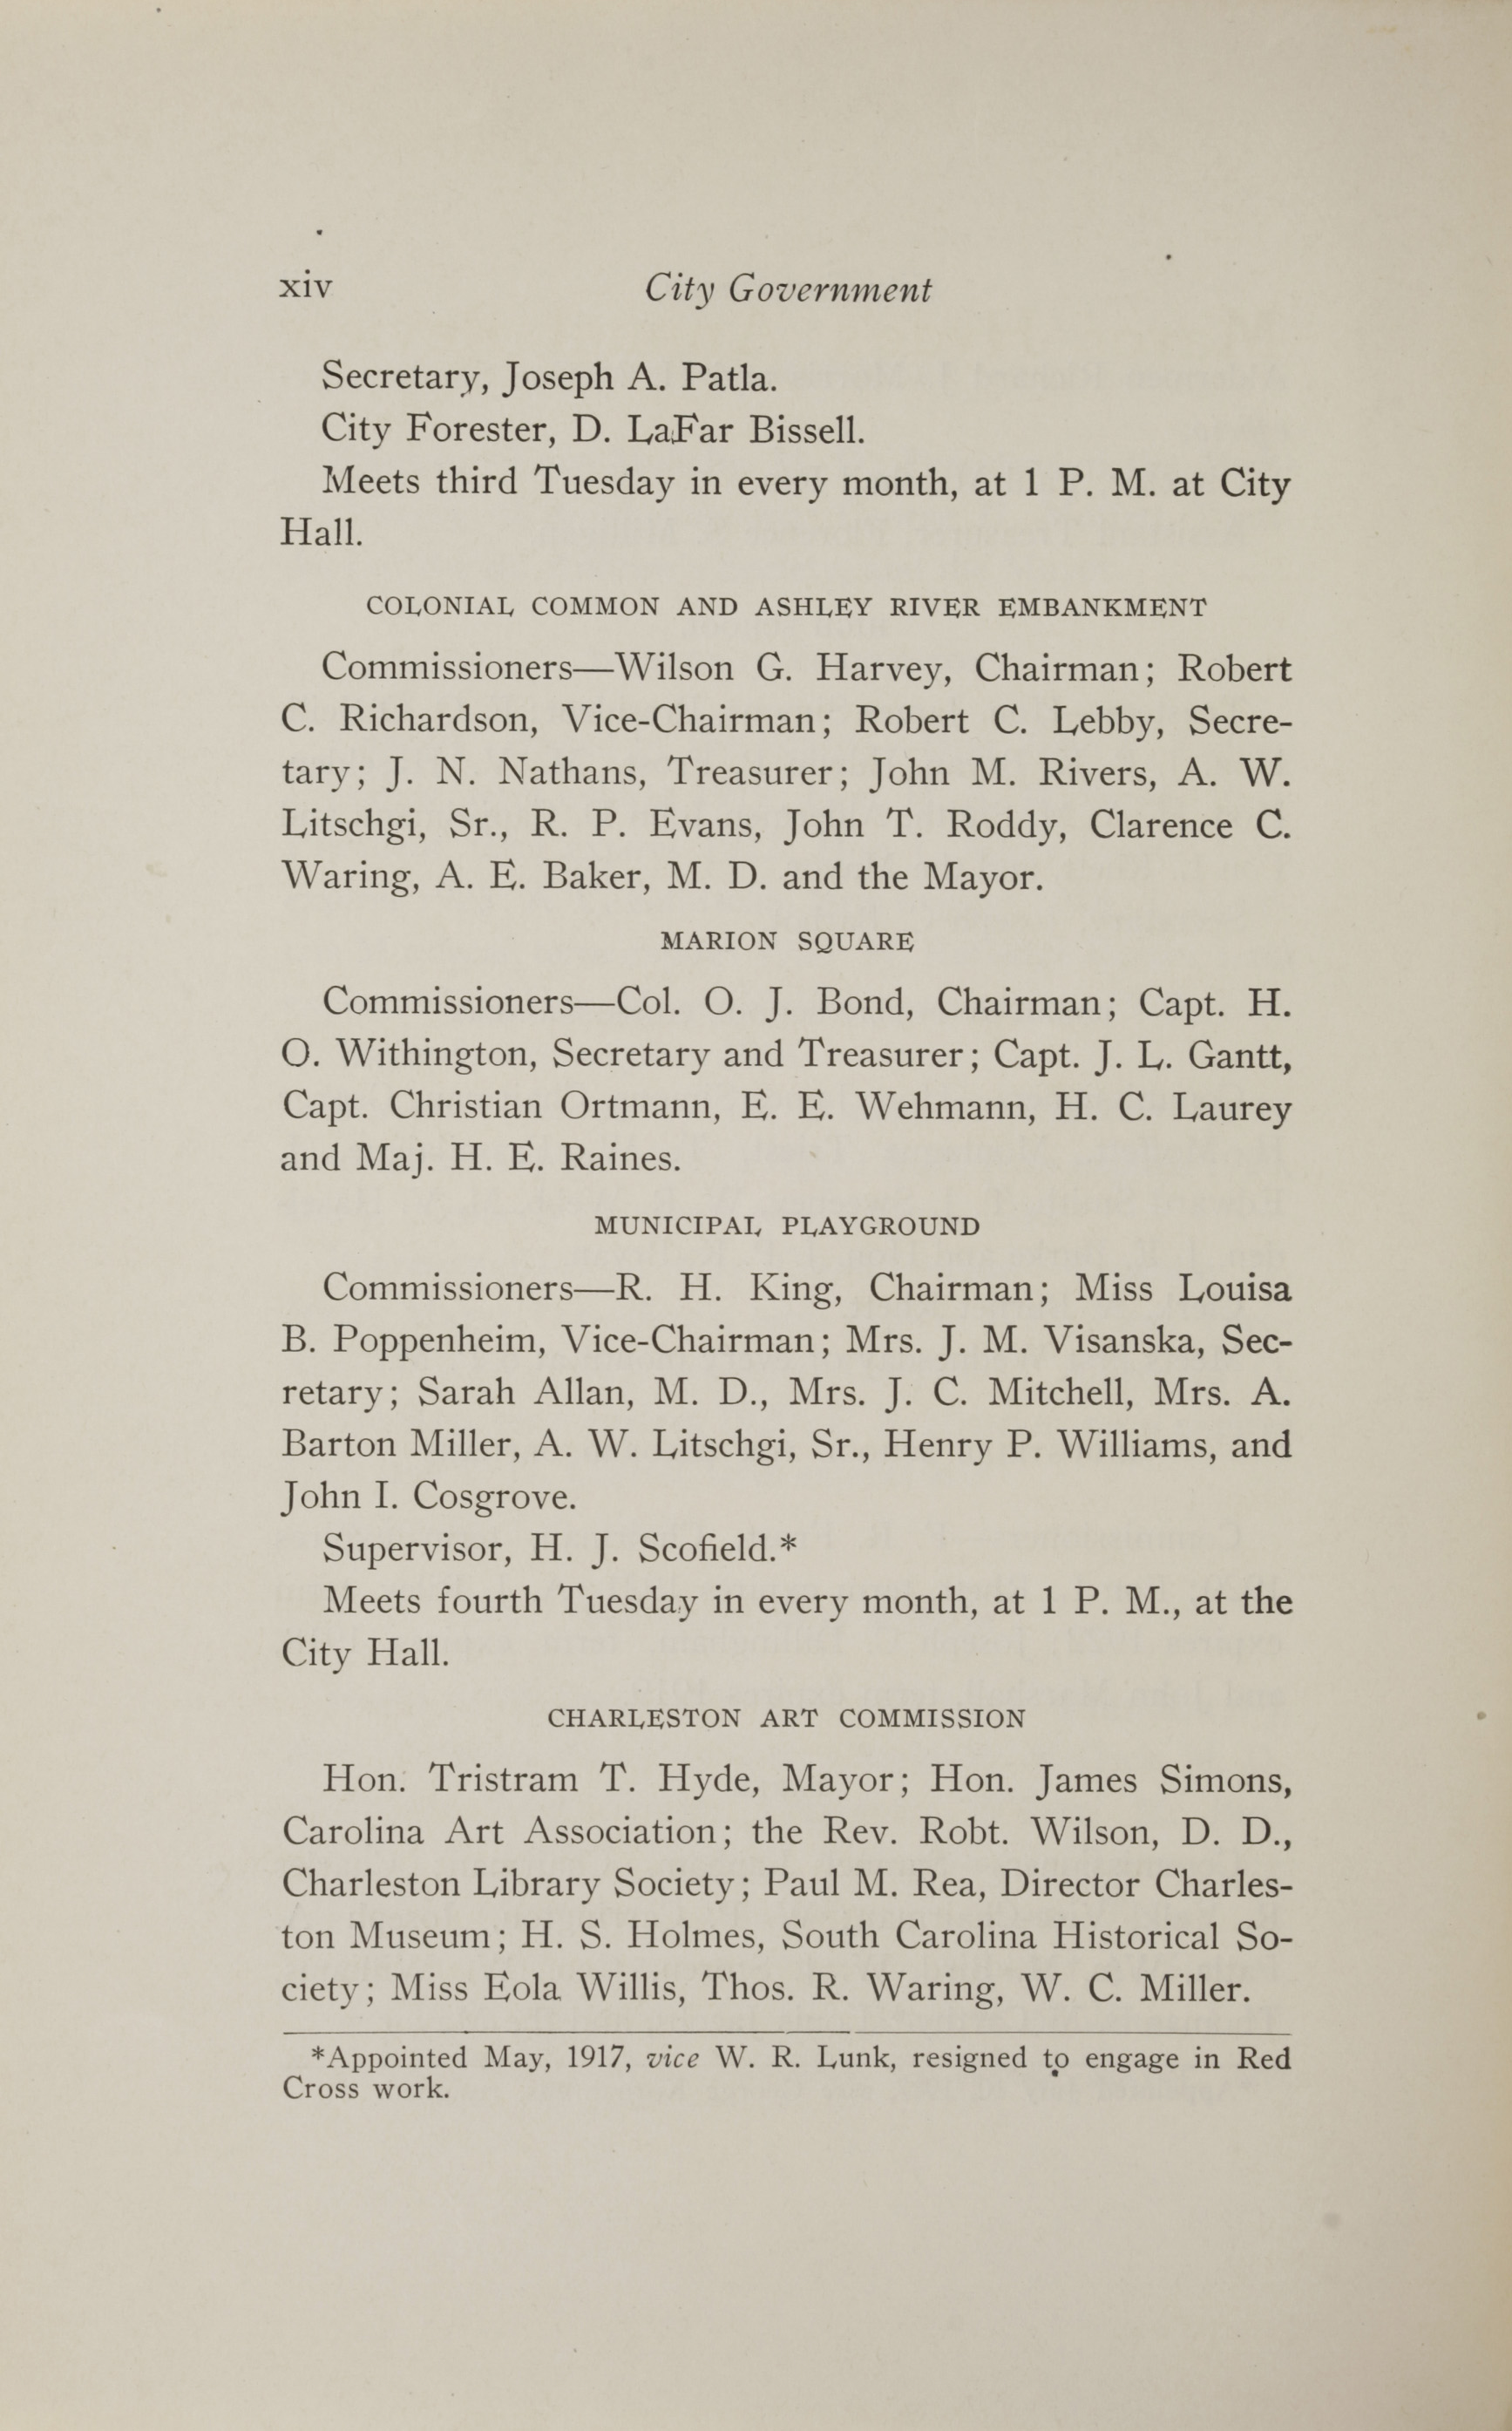 Charleston Yearbook, 1917, page xiv